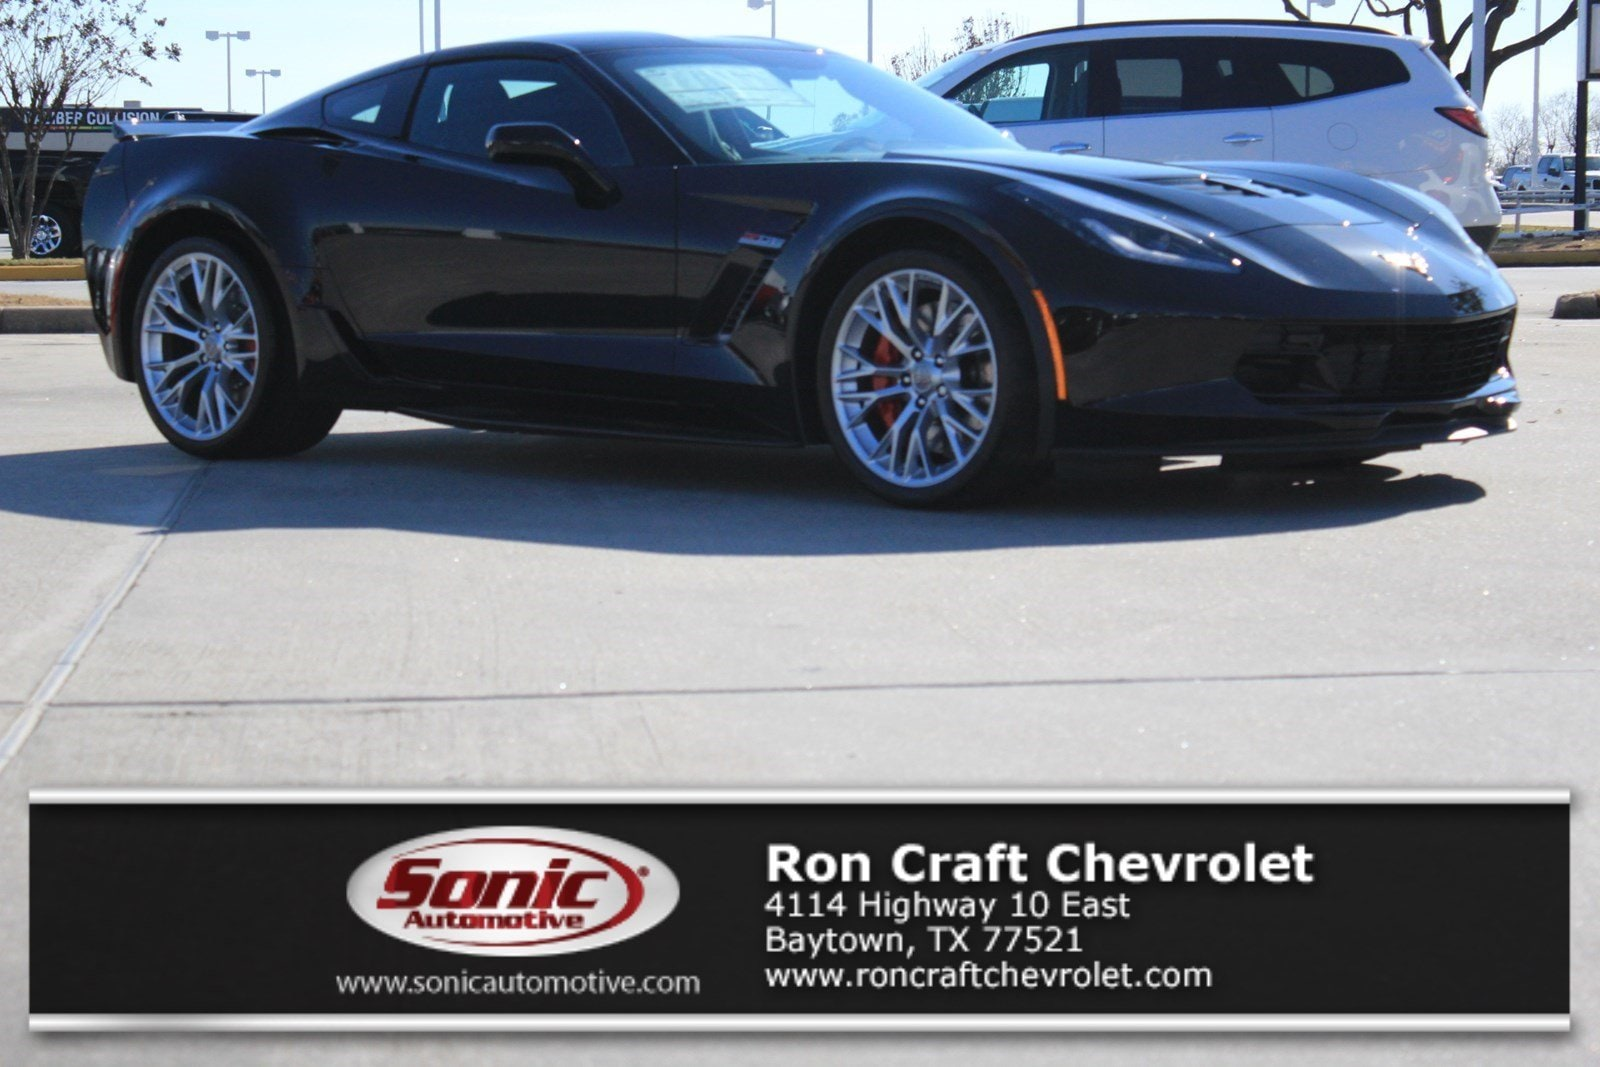 2019 chevrolet corvette for sale in baytown tx ron craft chevrolet. Black Bedroom Furniture Sets. Home Design Ideas